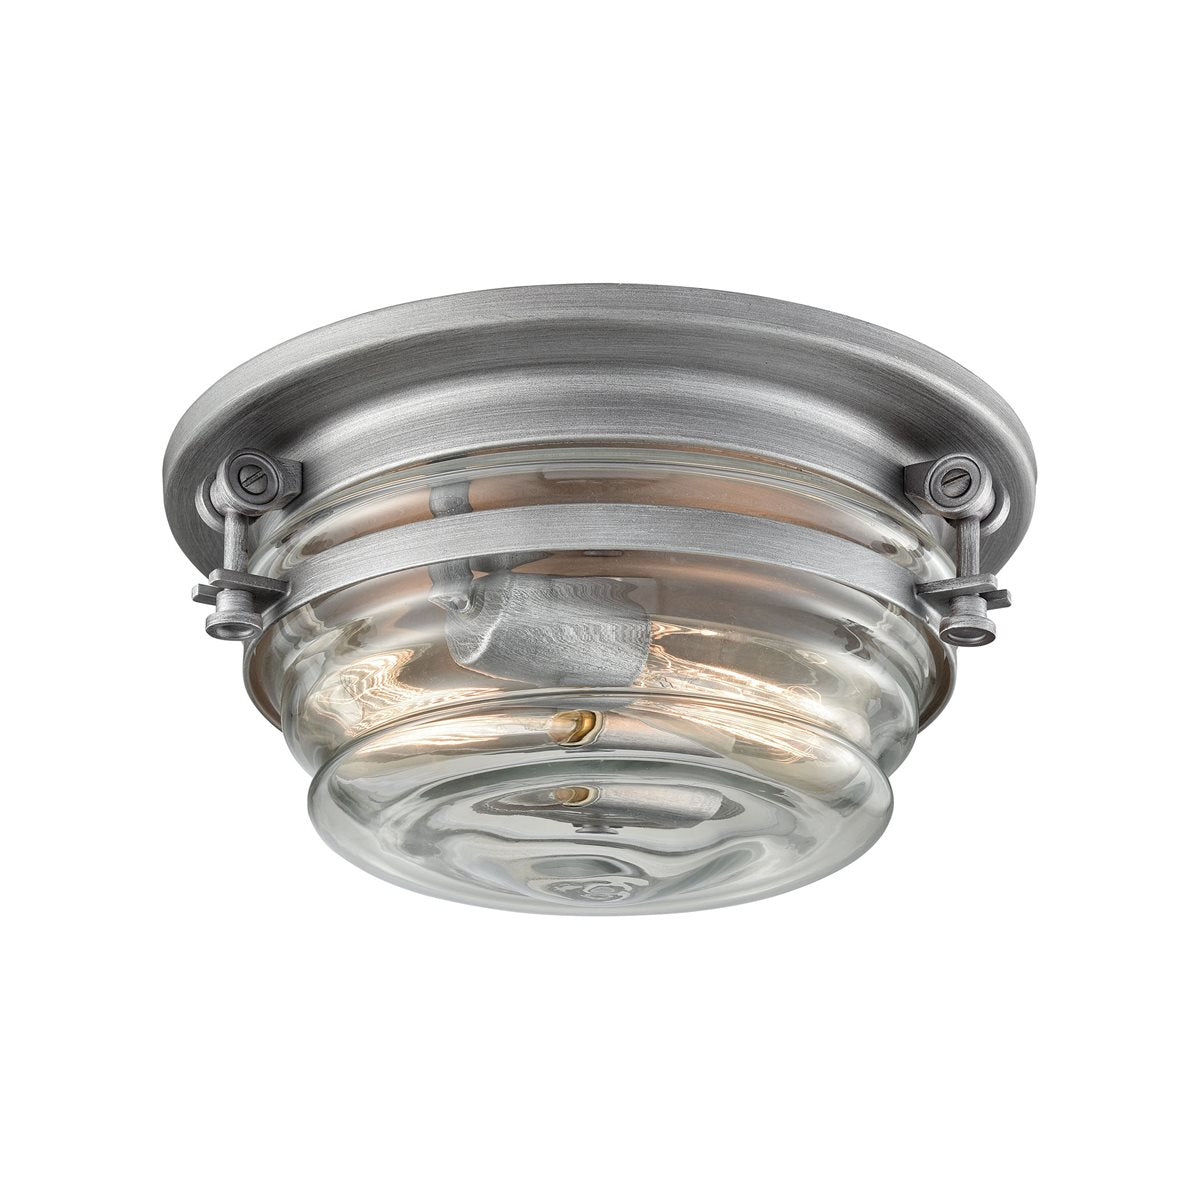 Riley 2 Flush Mount in Weathered Zinc design by BD Fine Lighting